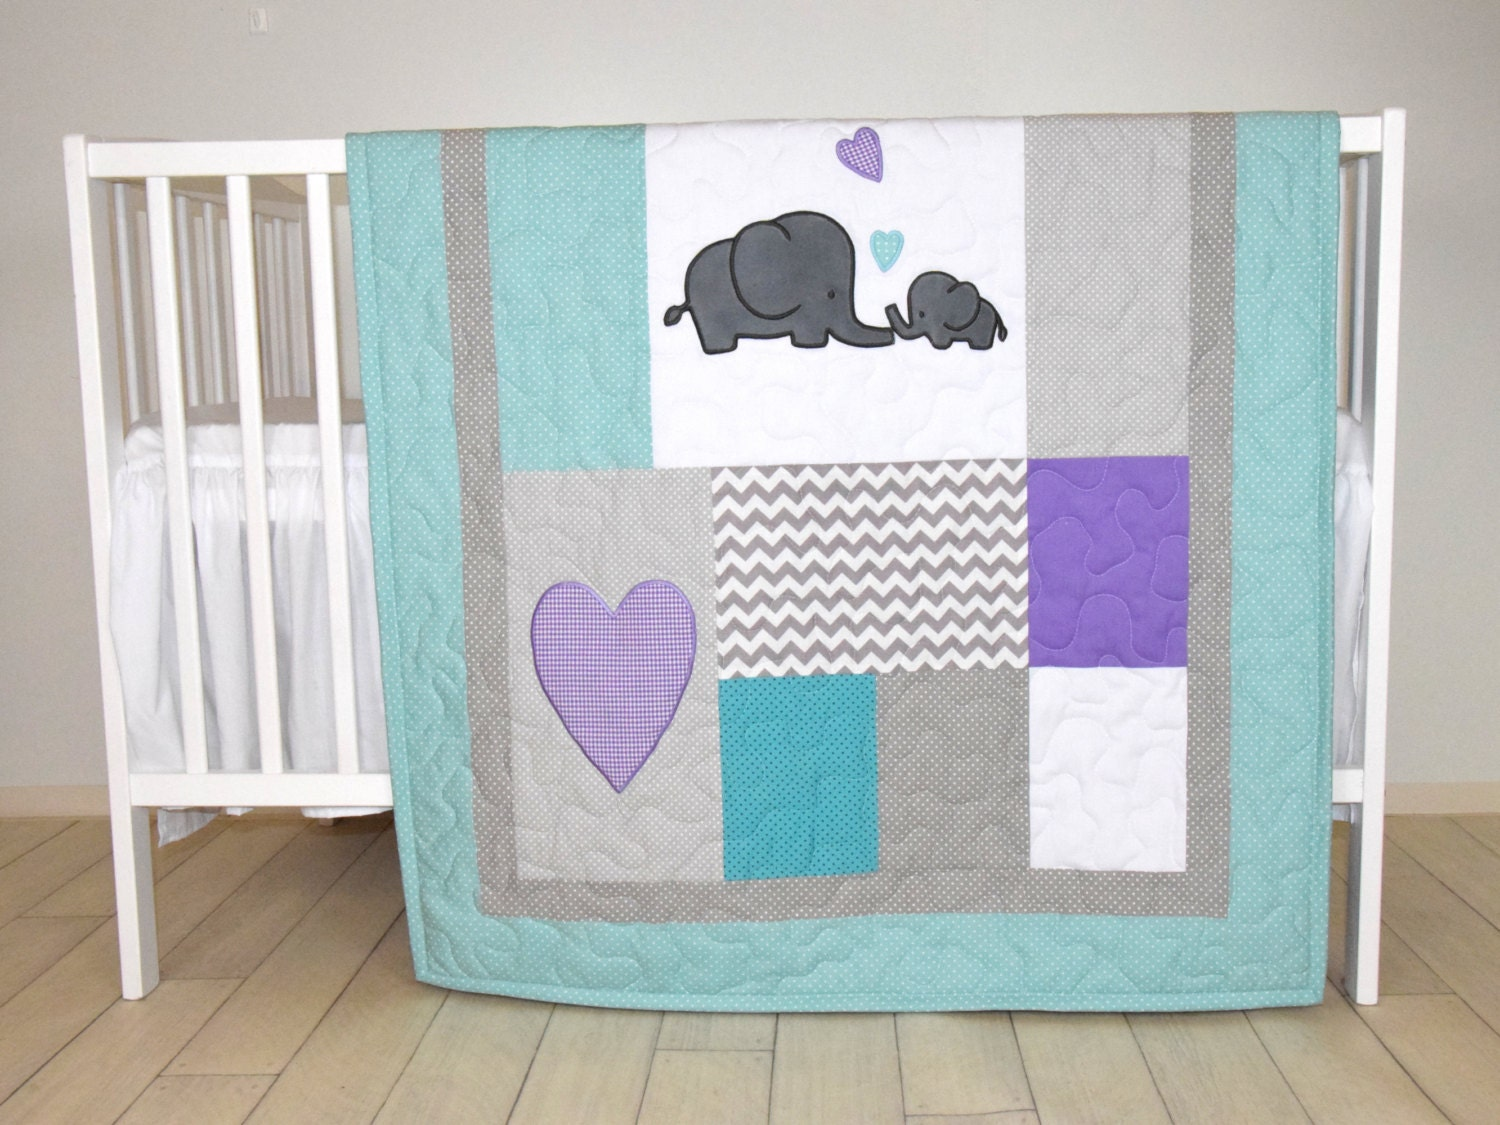 Elephant Baby Quilt Teal Gray Purple Crib Bedding Gray